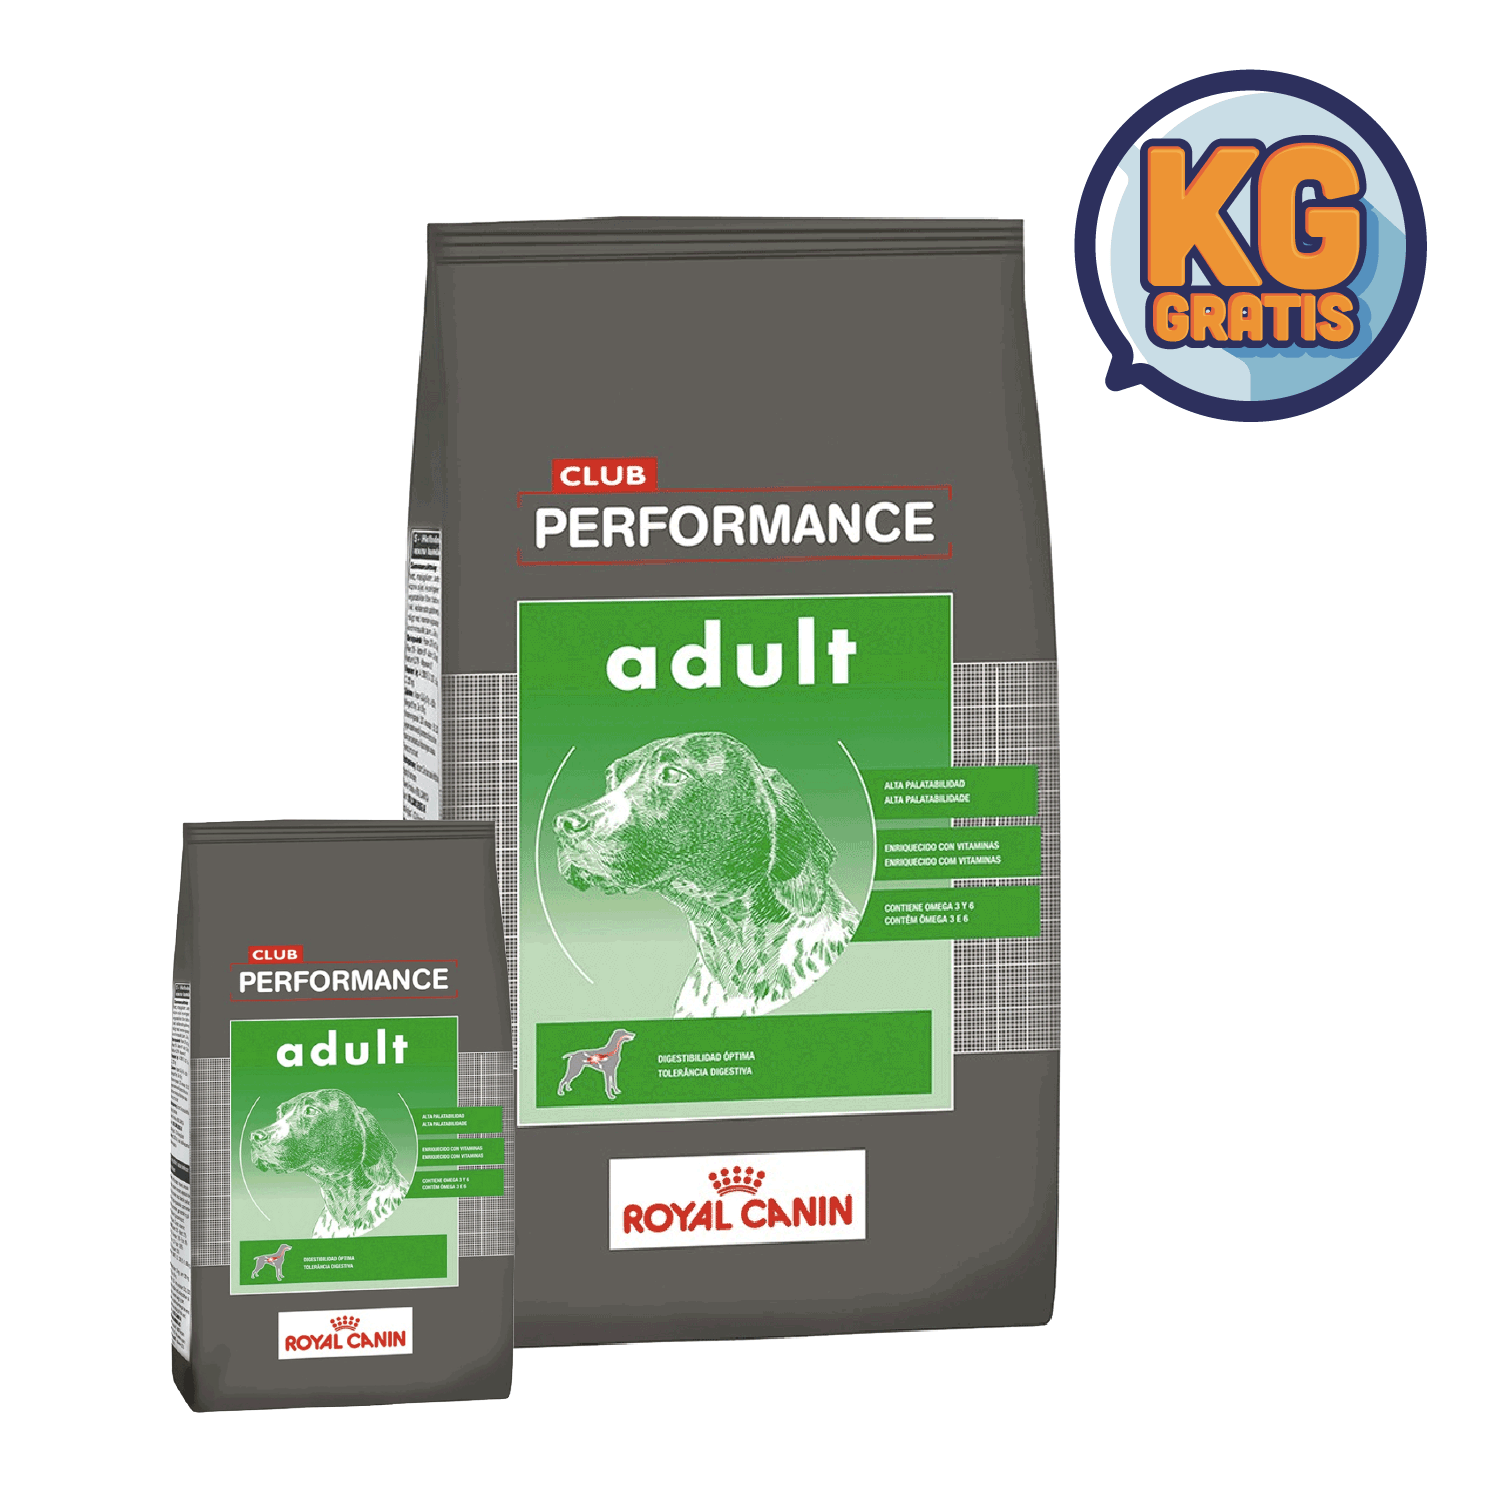 Club Performance Adulto 20 Kg + 2 Kg Gratis